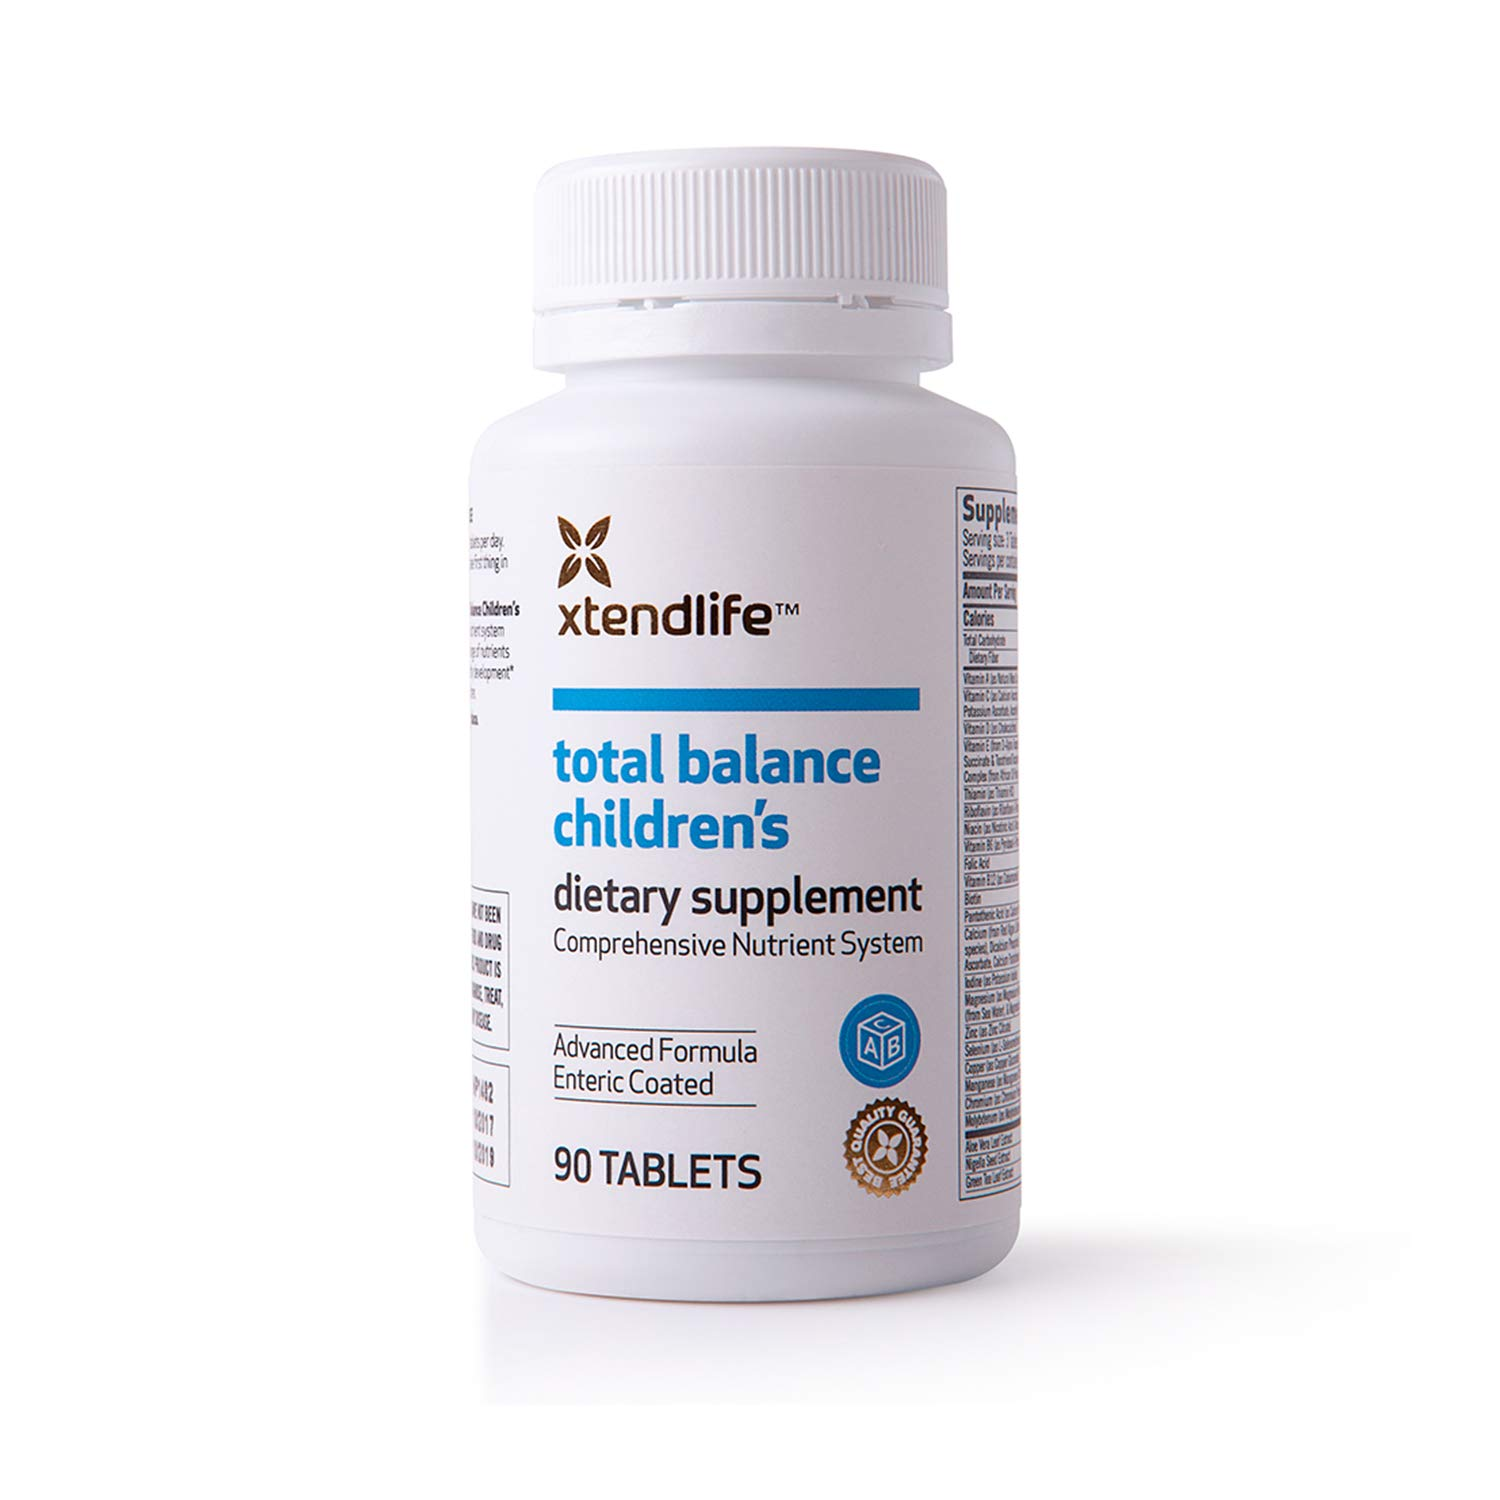 Xtend-Life Total Balance Children s Multivitamin, Daily Supplement, Immune Boosters, Brain Support, and Vitamin C, Ages 5-12, 90 tablets